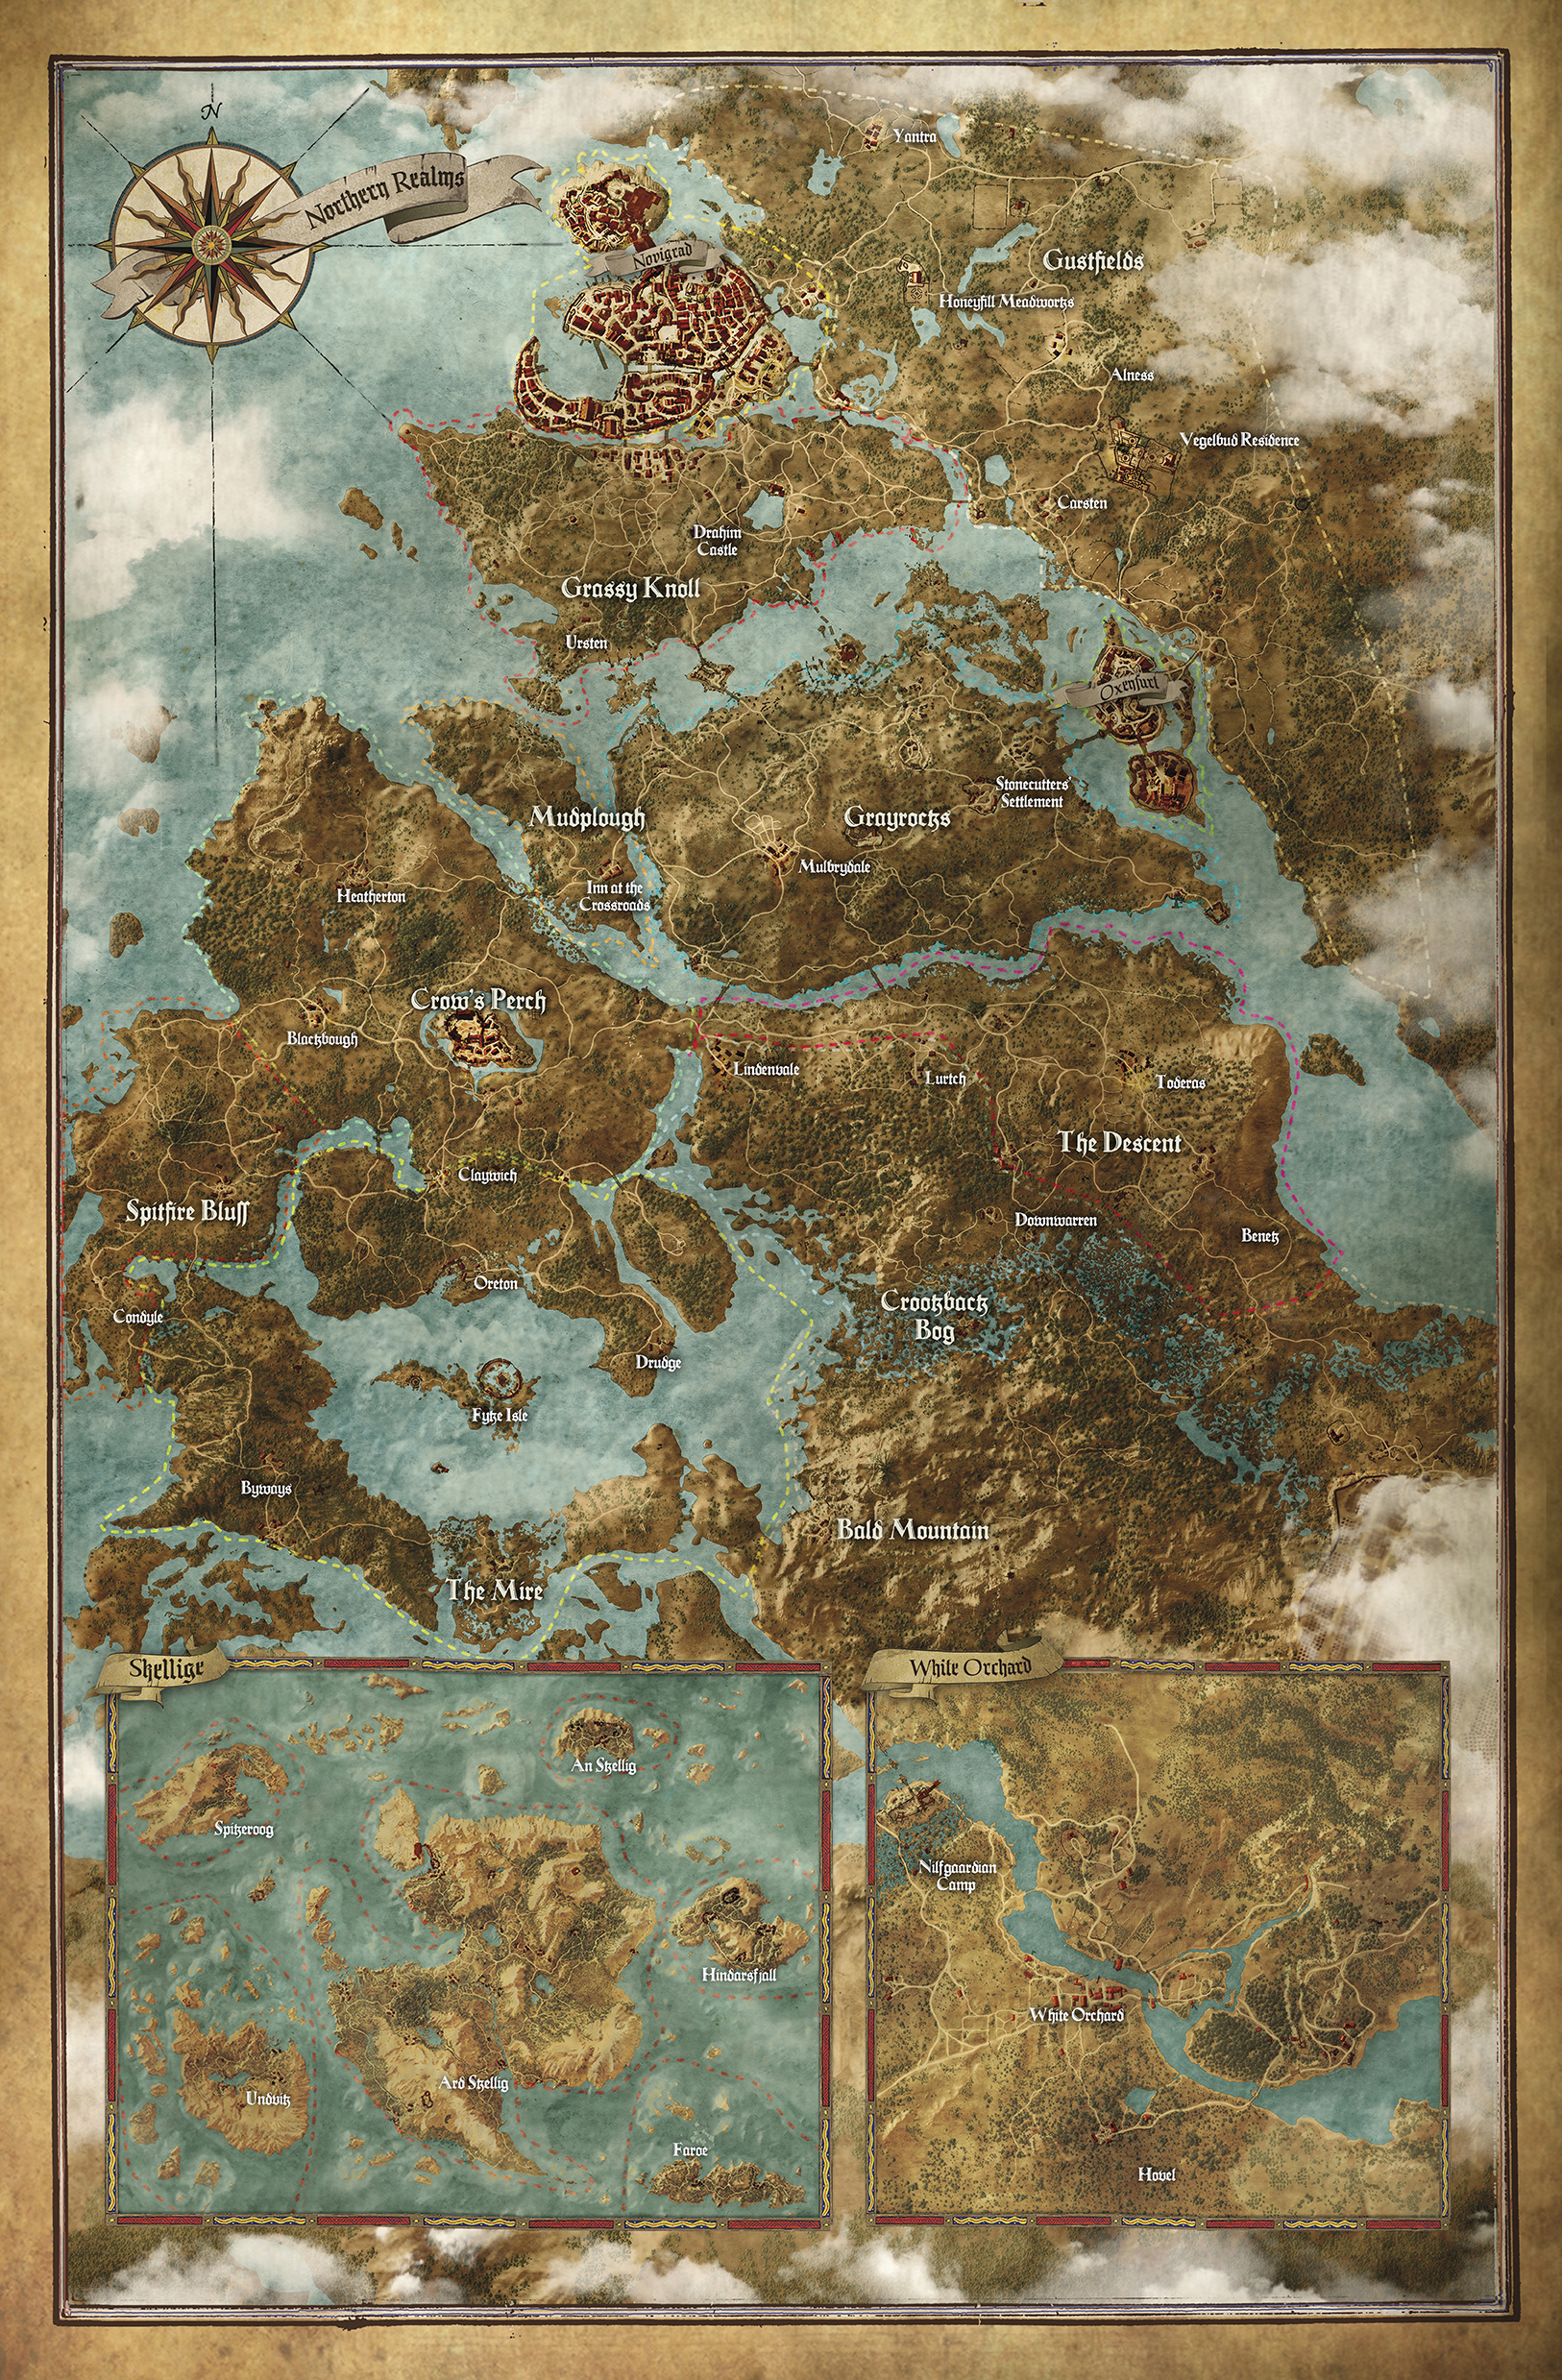 Witcher 3 world map the witcher 3 world map gumiabroncs Choice Image